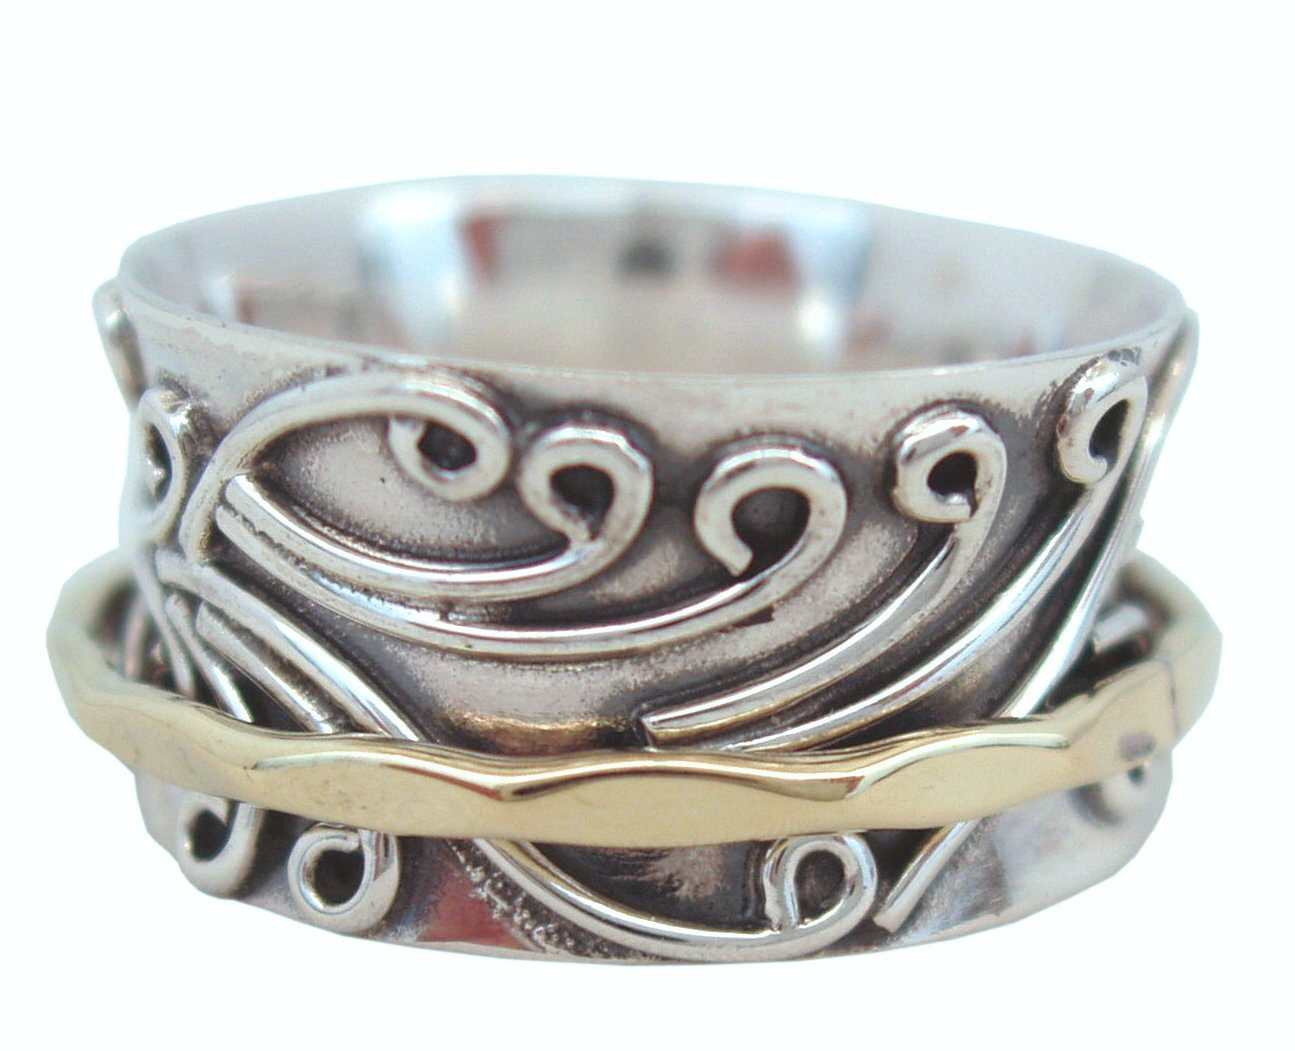 Energy Stone RADHA Meditation Spinner Ring with Brass Spinner on 3D Floral Pattern (Style #US05) (10.5) by Energy Stone (Image #4)